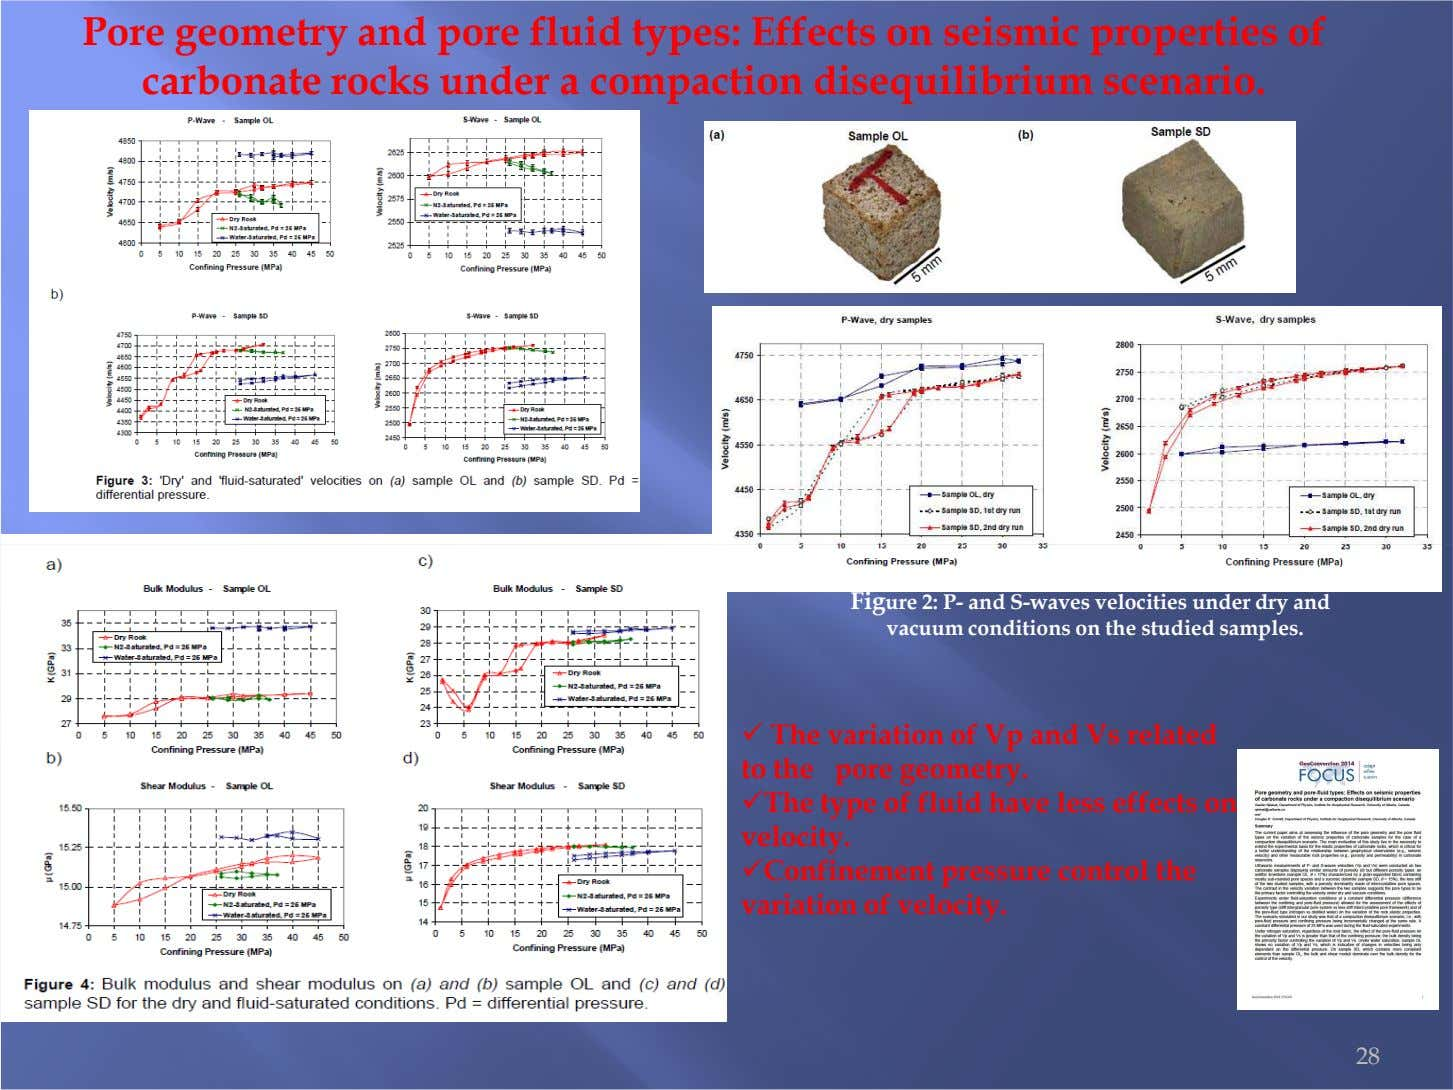 Pore geometry and pore fluid types: Effects on seismic properties of carbonate rocks under a